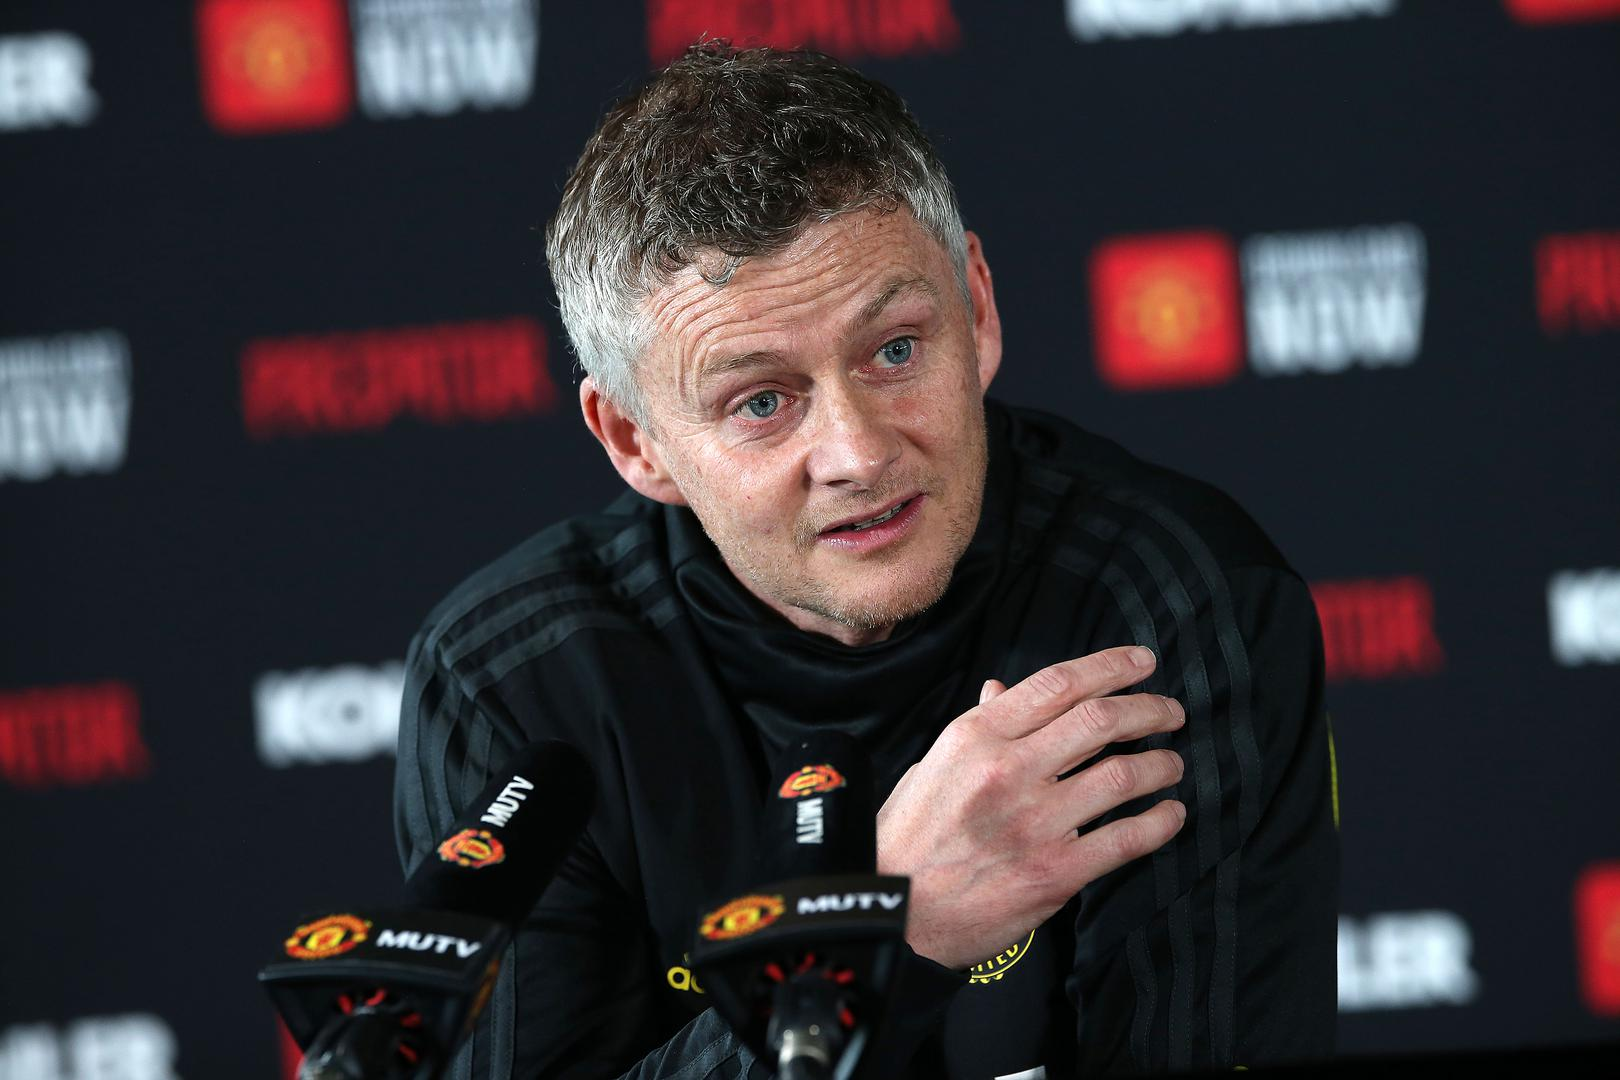 Ole Gunnar Solskjaer speaking as part of his pre-match press conference.